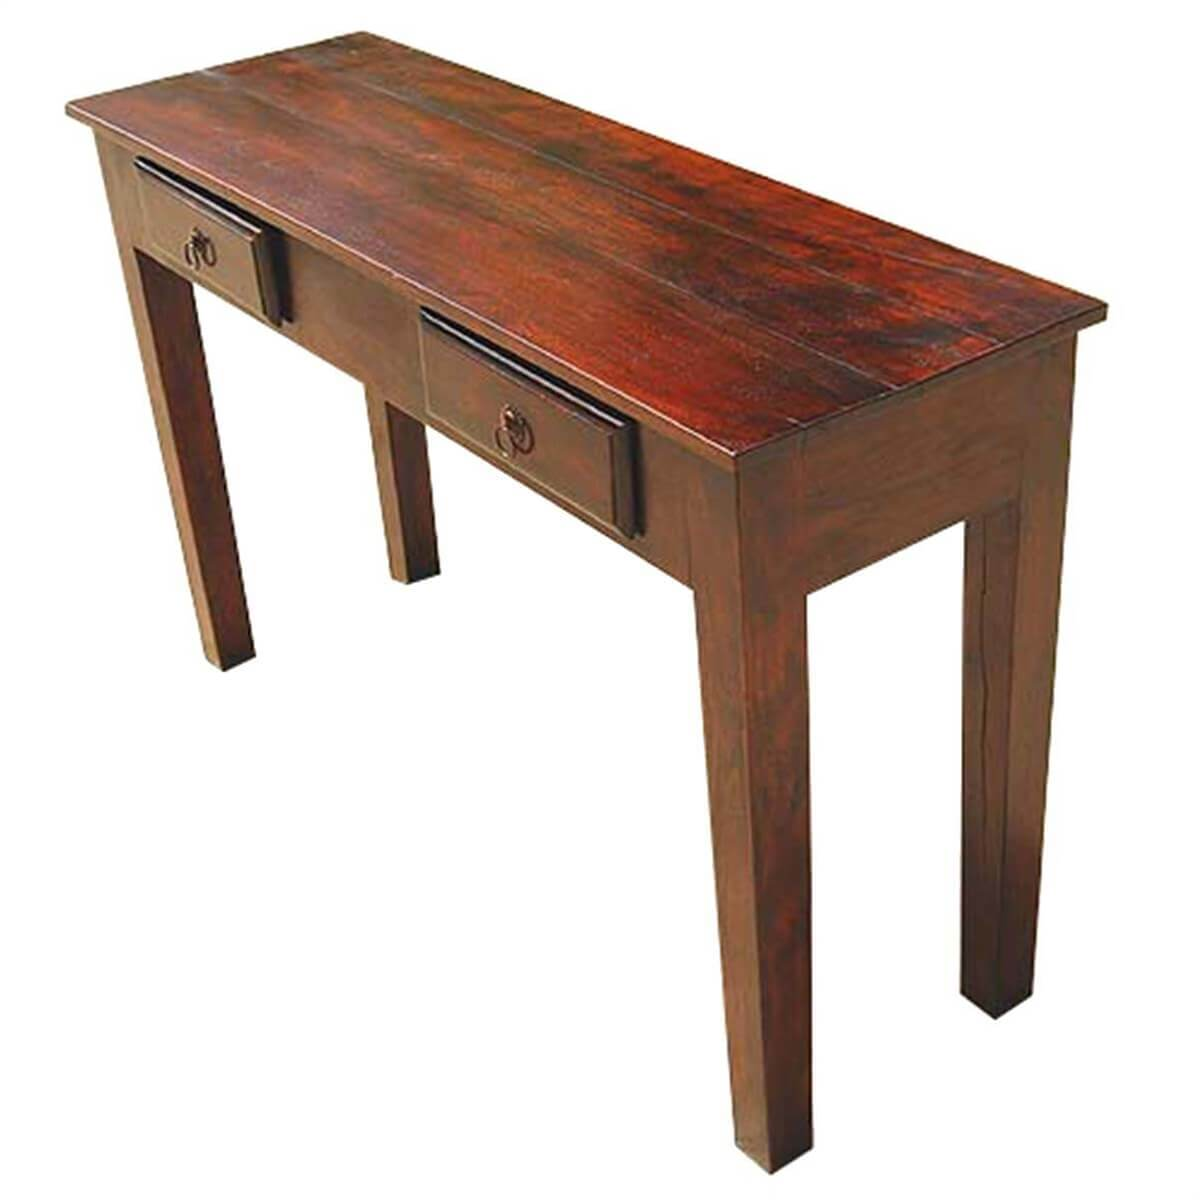 Superb img of Wood Storage Drawers Console Hall Entry Way Foyer Table with #B27F19 color and 1200x1200 pixels